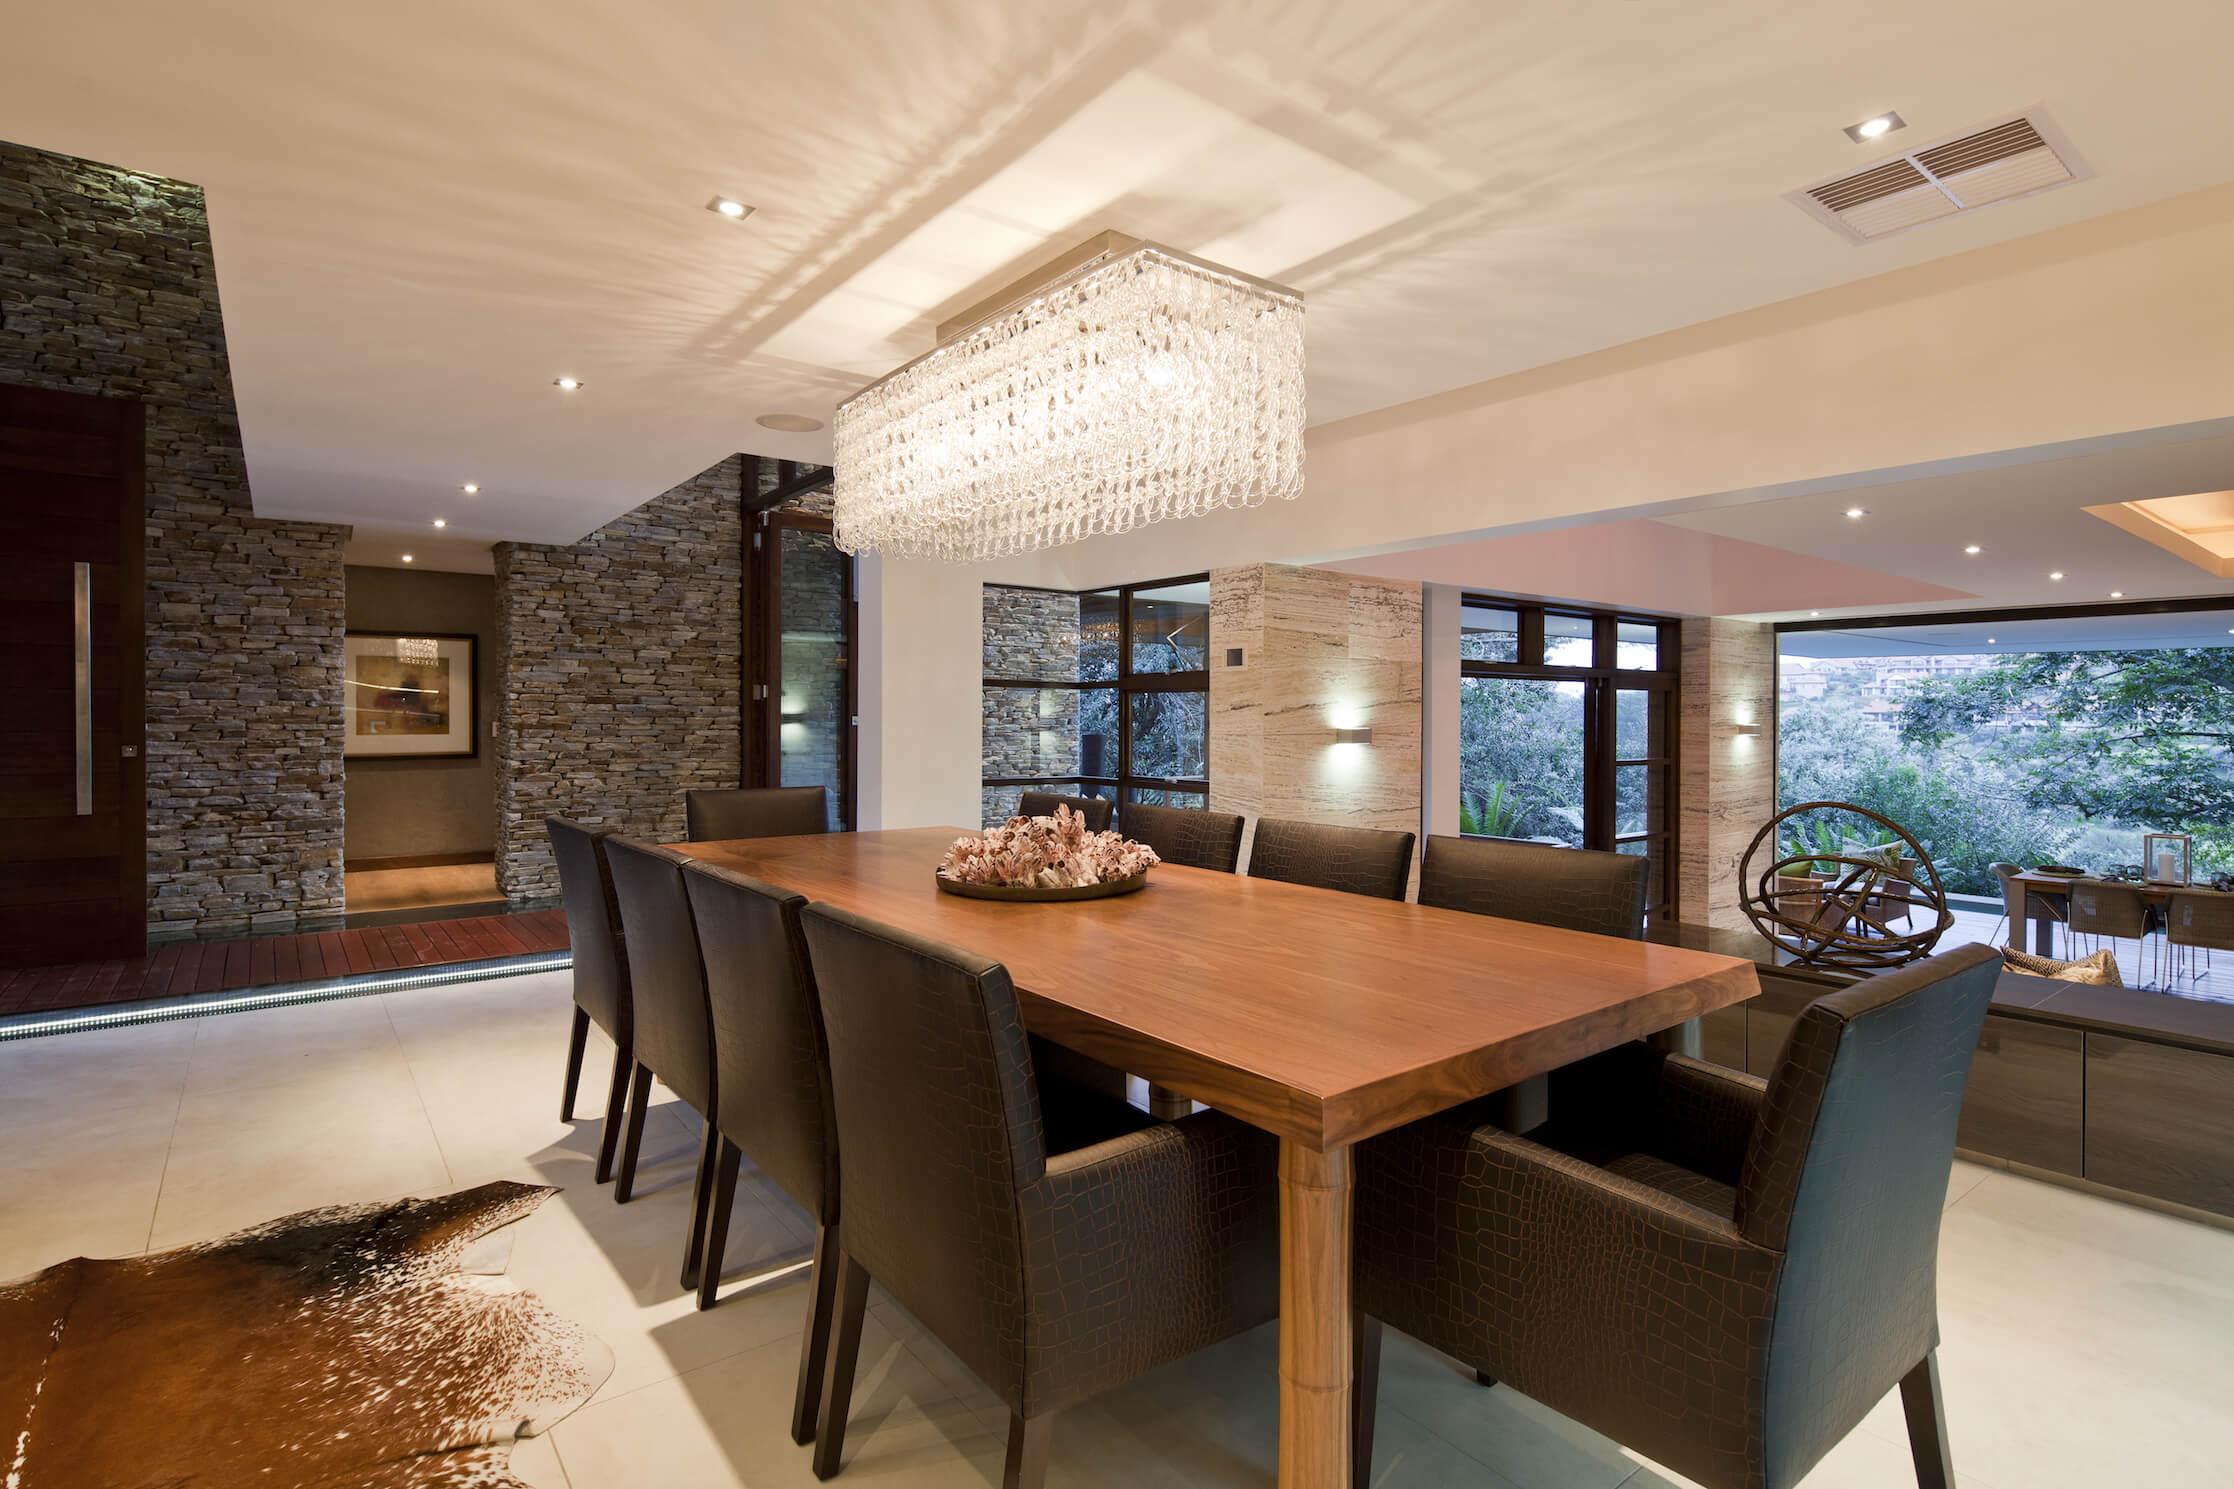 The formal dining room shares the open space with the kitchen, centered on a large natural wood dining table and chocolate toned dining chairs. A large shimmering box chandelier hangs above.